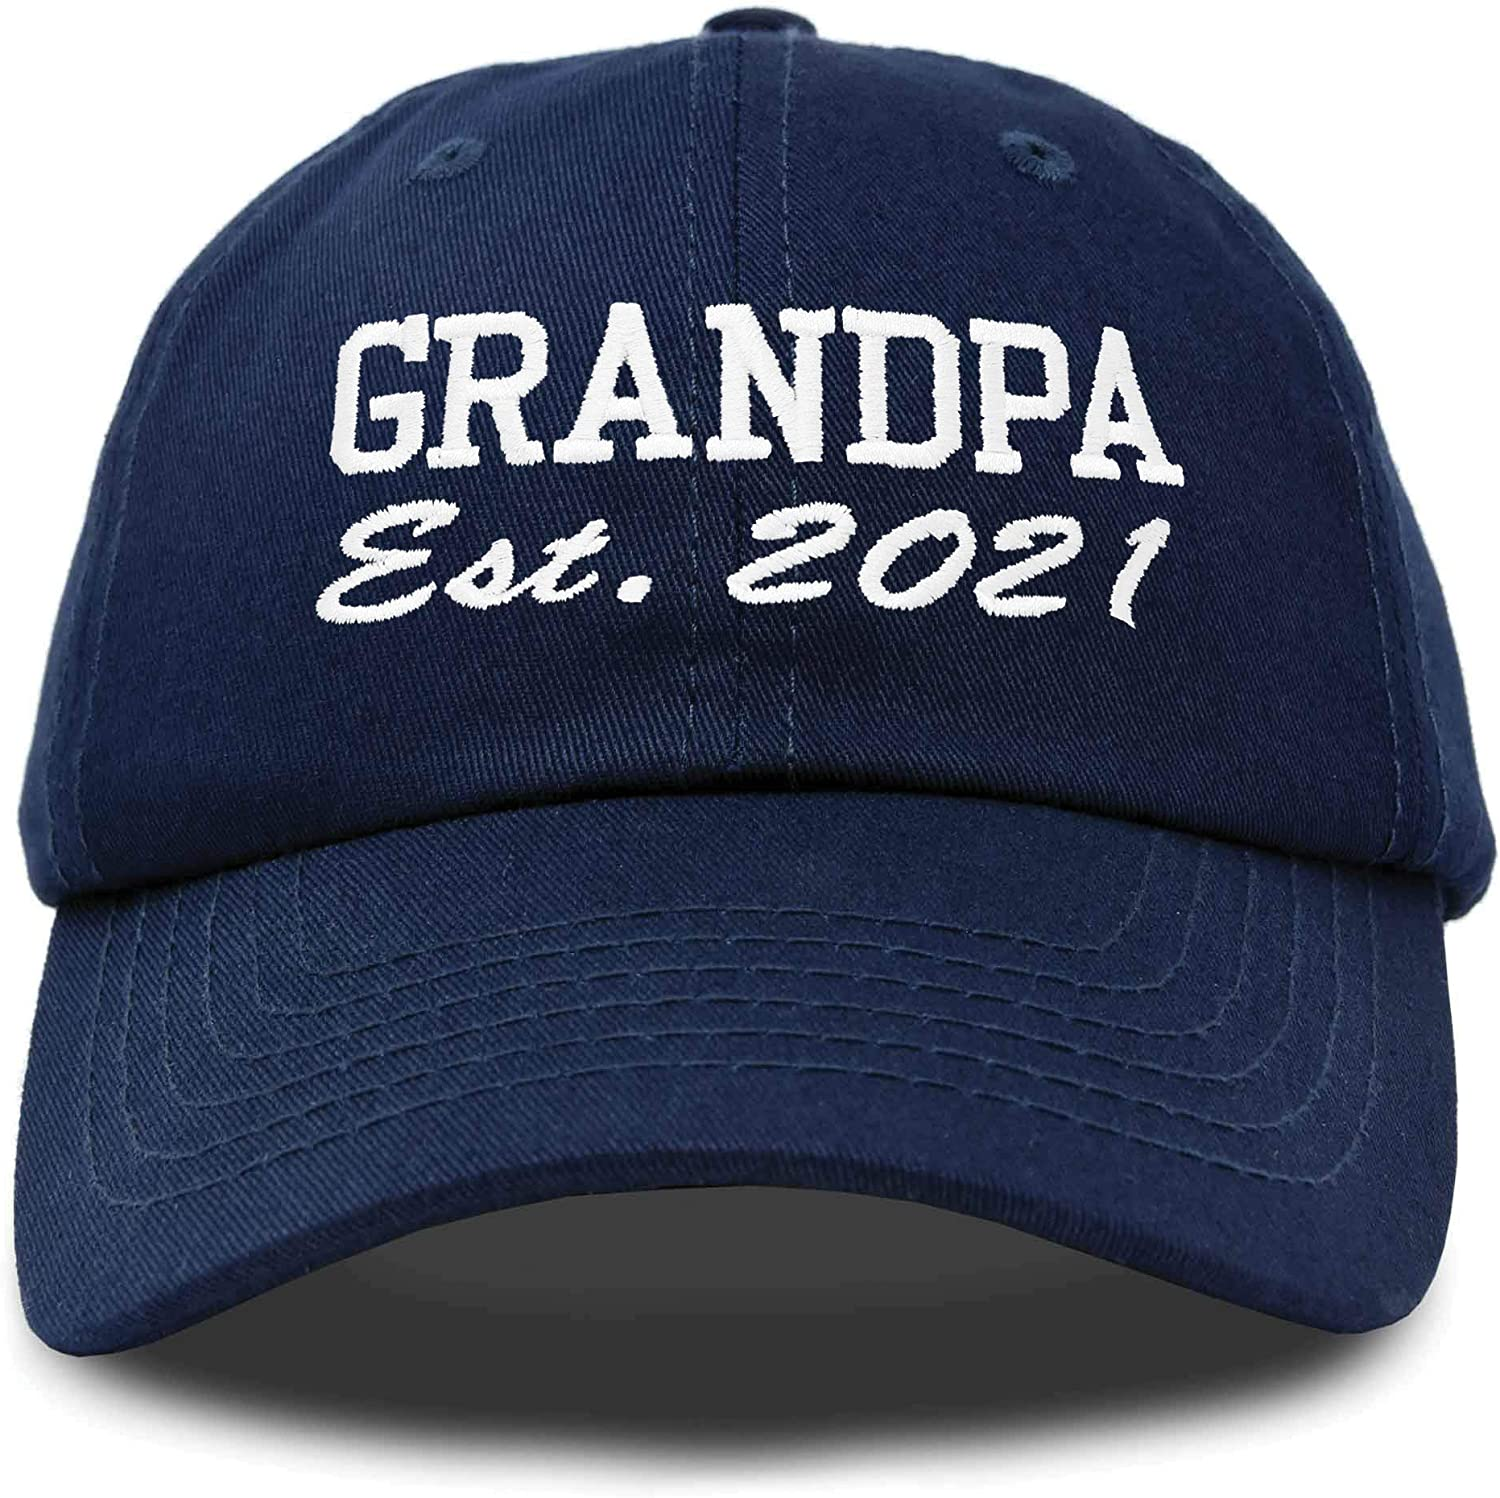 DALIX New Grandpa Hat Est Limited time sale 2021 Cott Dad Embroidered Fun Gift Free shipping on posting reviews